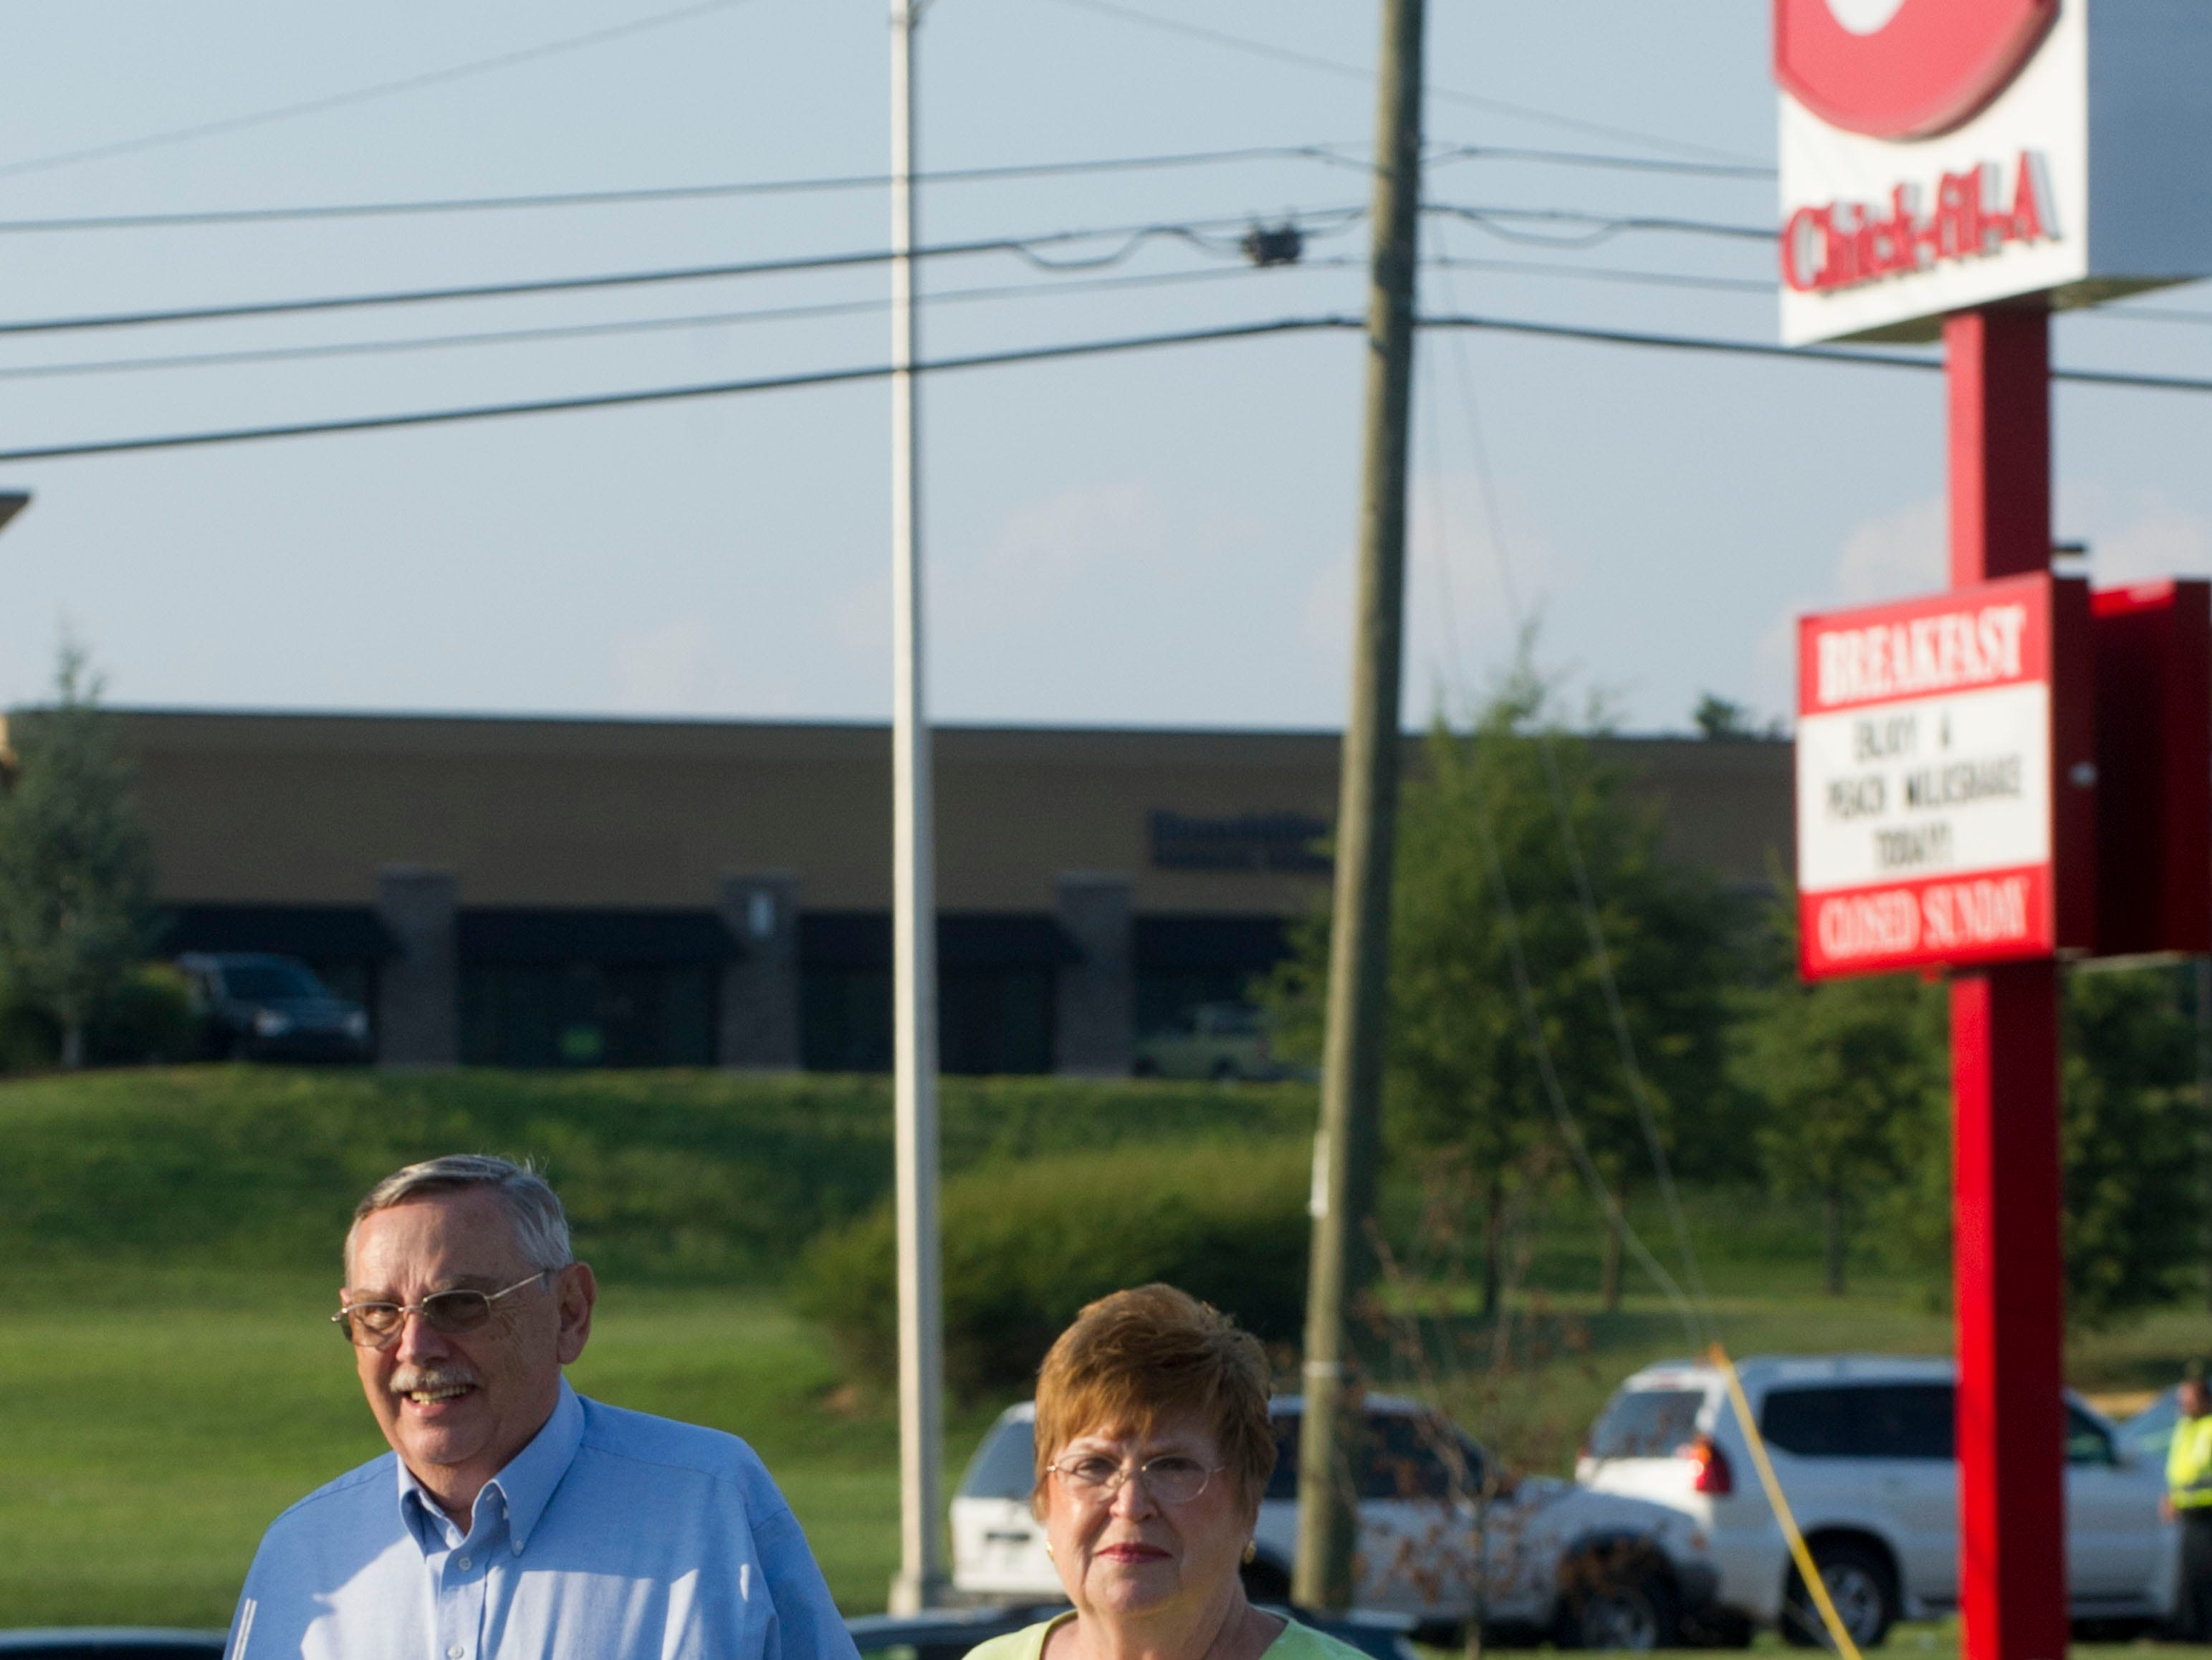 Gene Stafford and his wife Margie Stafford walk back to their cars after having their second meal of the day at Chick-fil-A on Emory Rd. The Staffords waited nearly an hour standing in line on Wednesday, August 1, 2012.